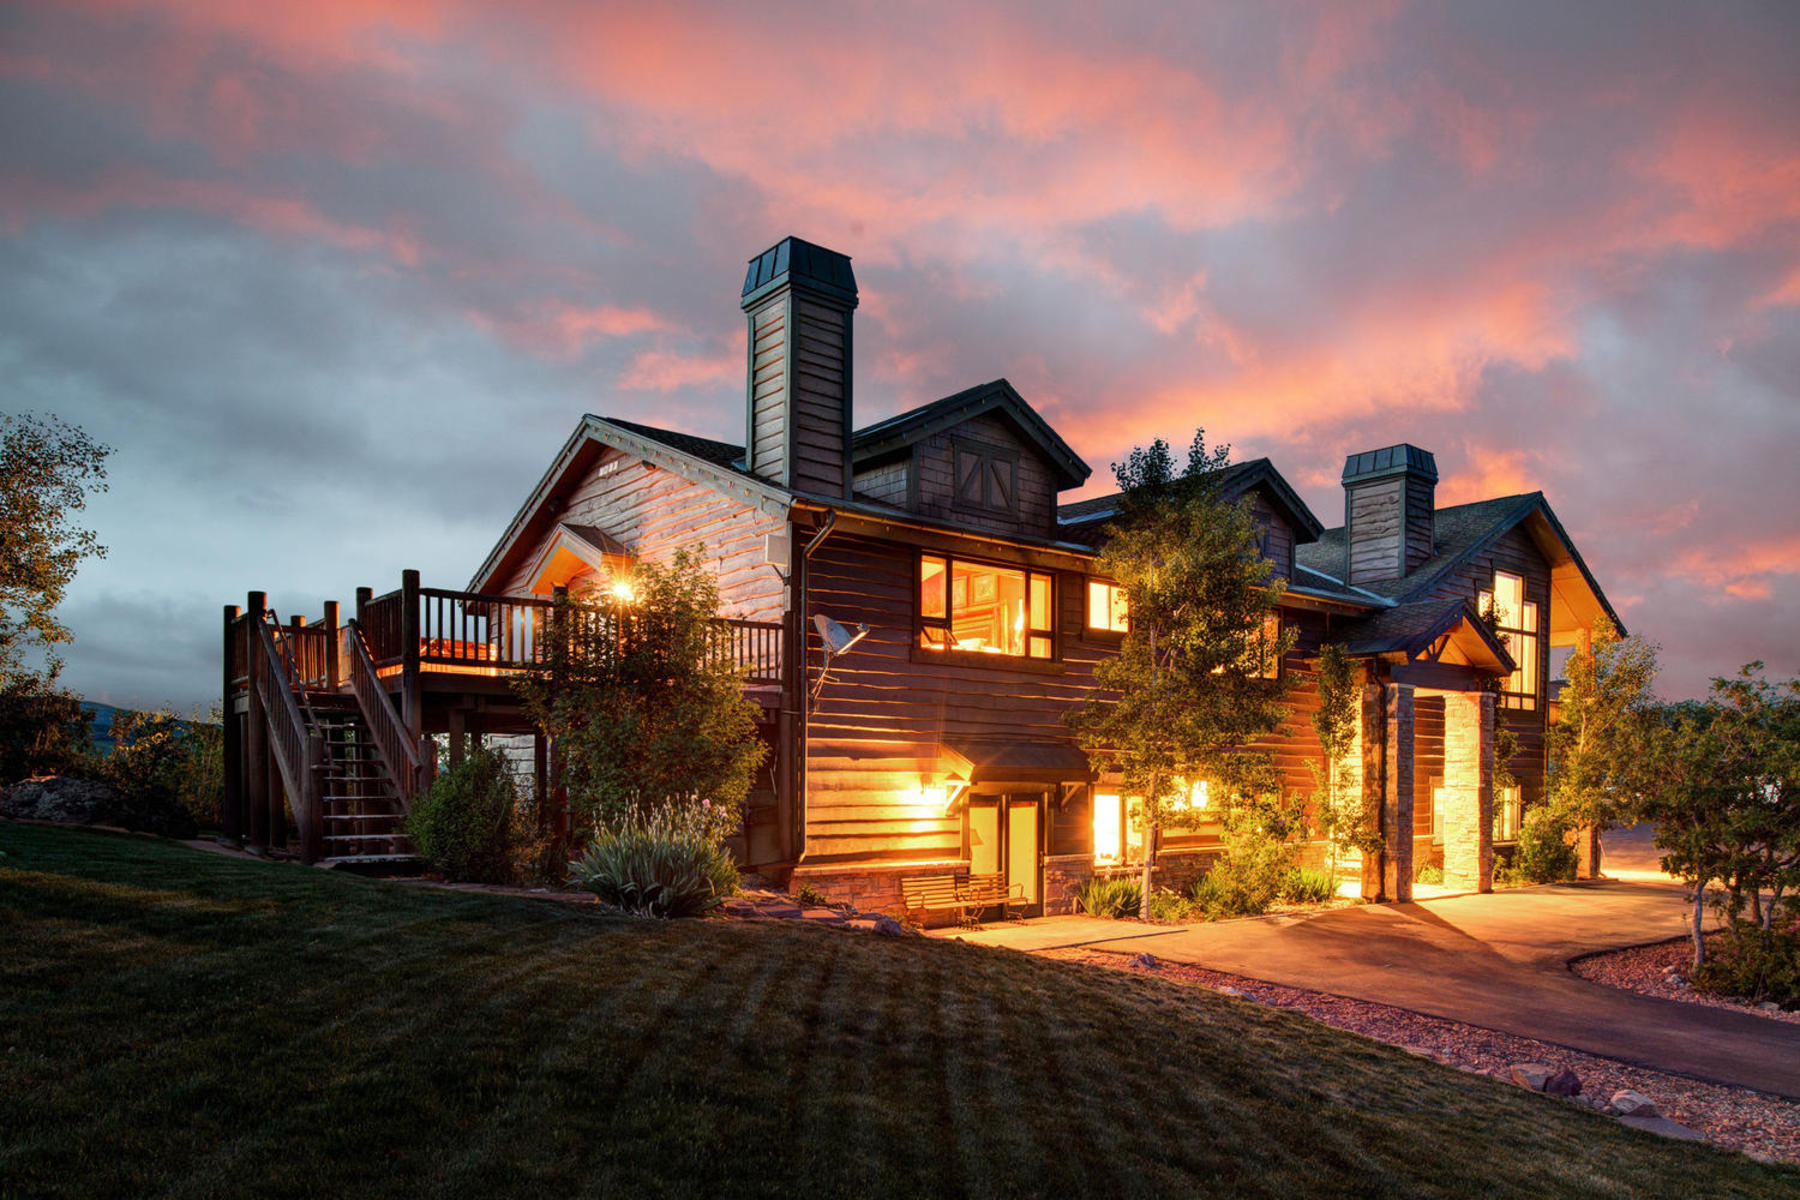 Single Family Home for Sale at Breathtaking Panoramic Views 1317 E Tollgate Rd Park City, Utah 84098 United States